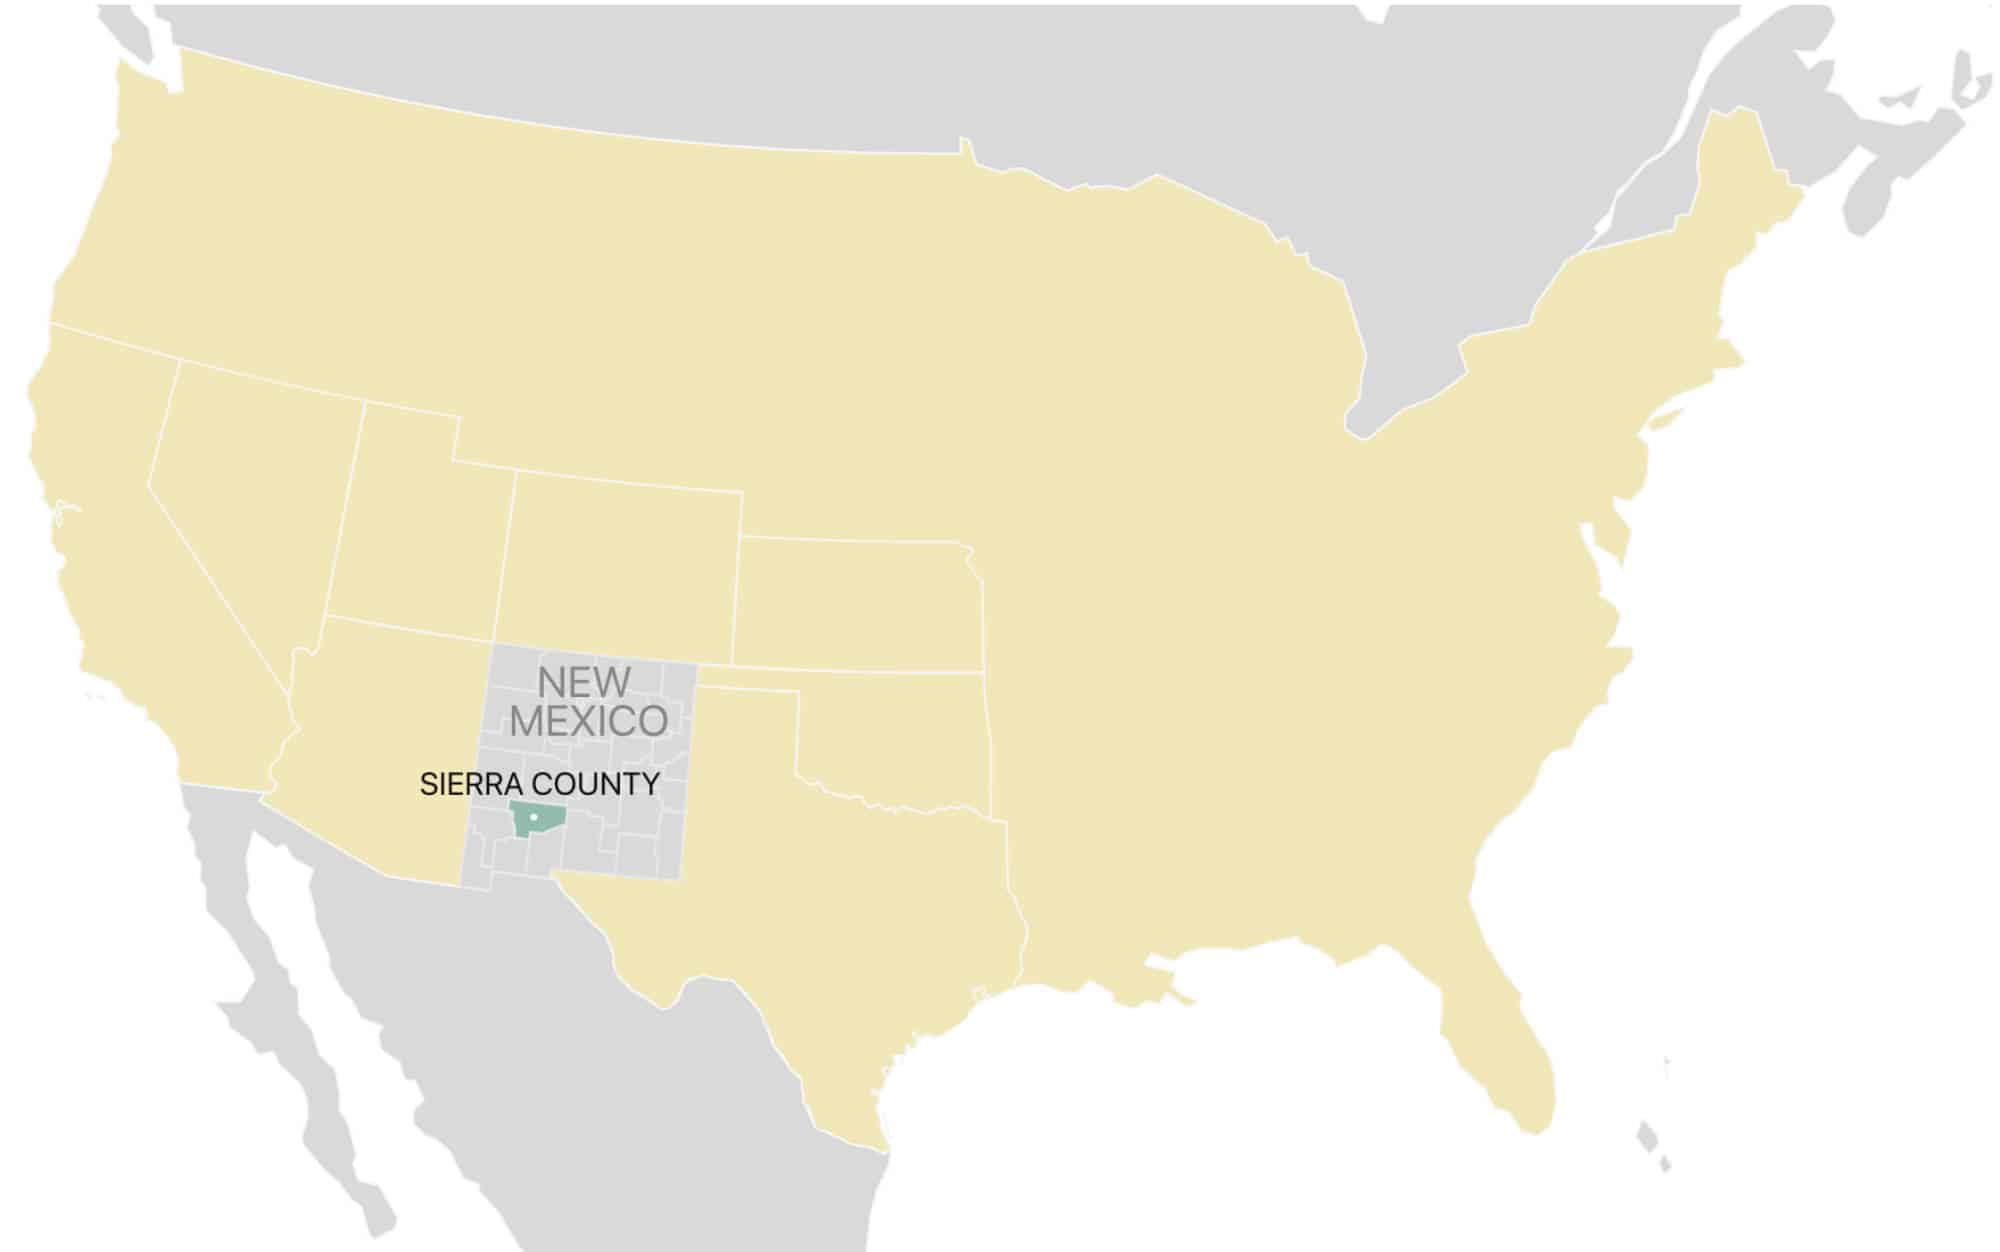 map of Sierra County New Mexico USa